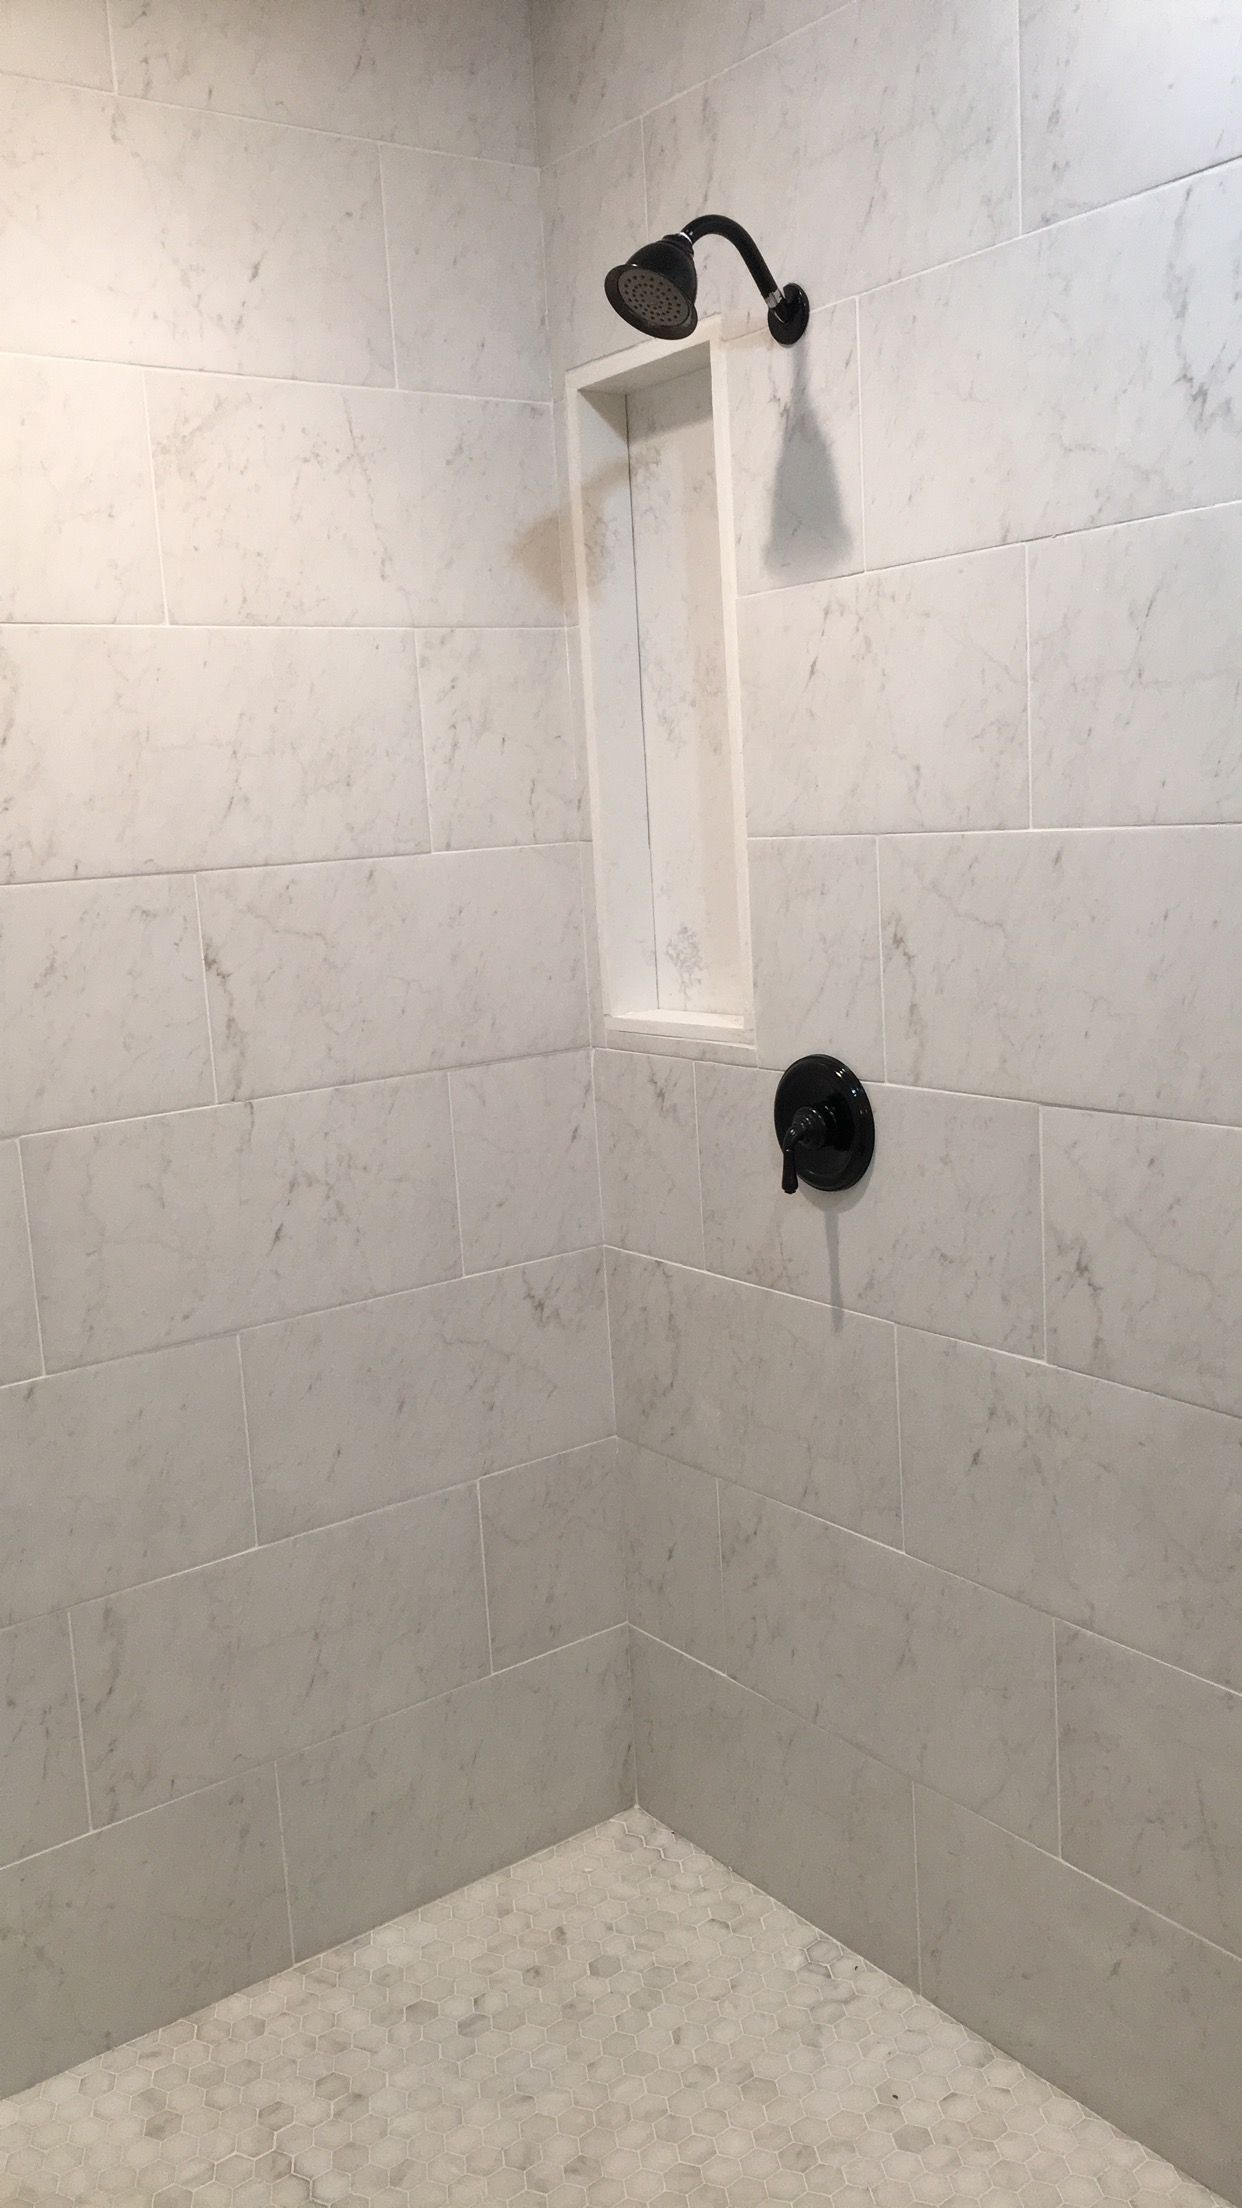 White Shower 12x24 Tiles Black Shower Faucet Marble Floors Shower Wall Tile Marble Showers Marble Shower Walls